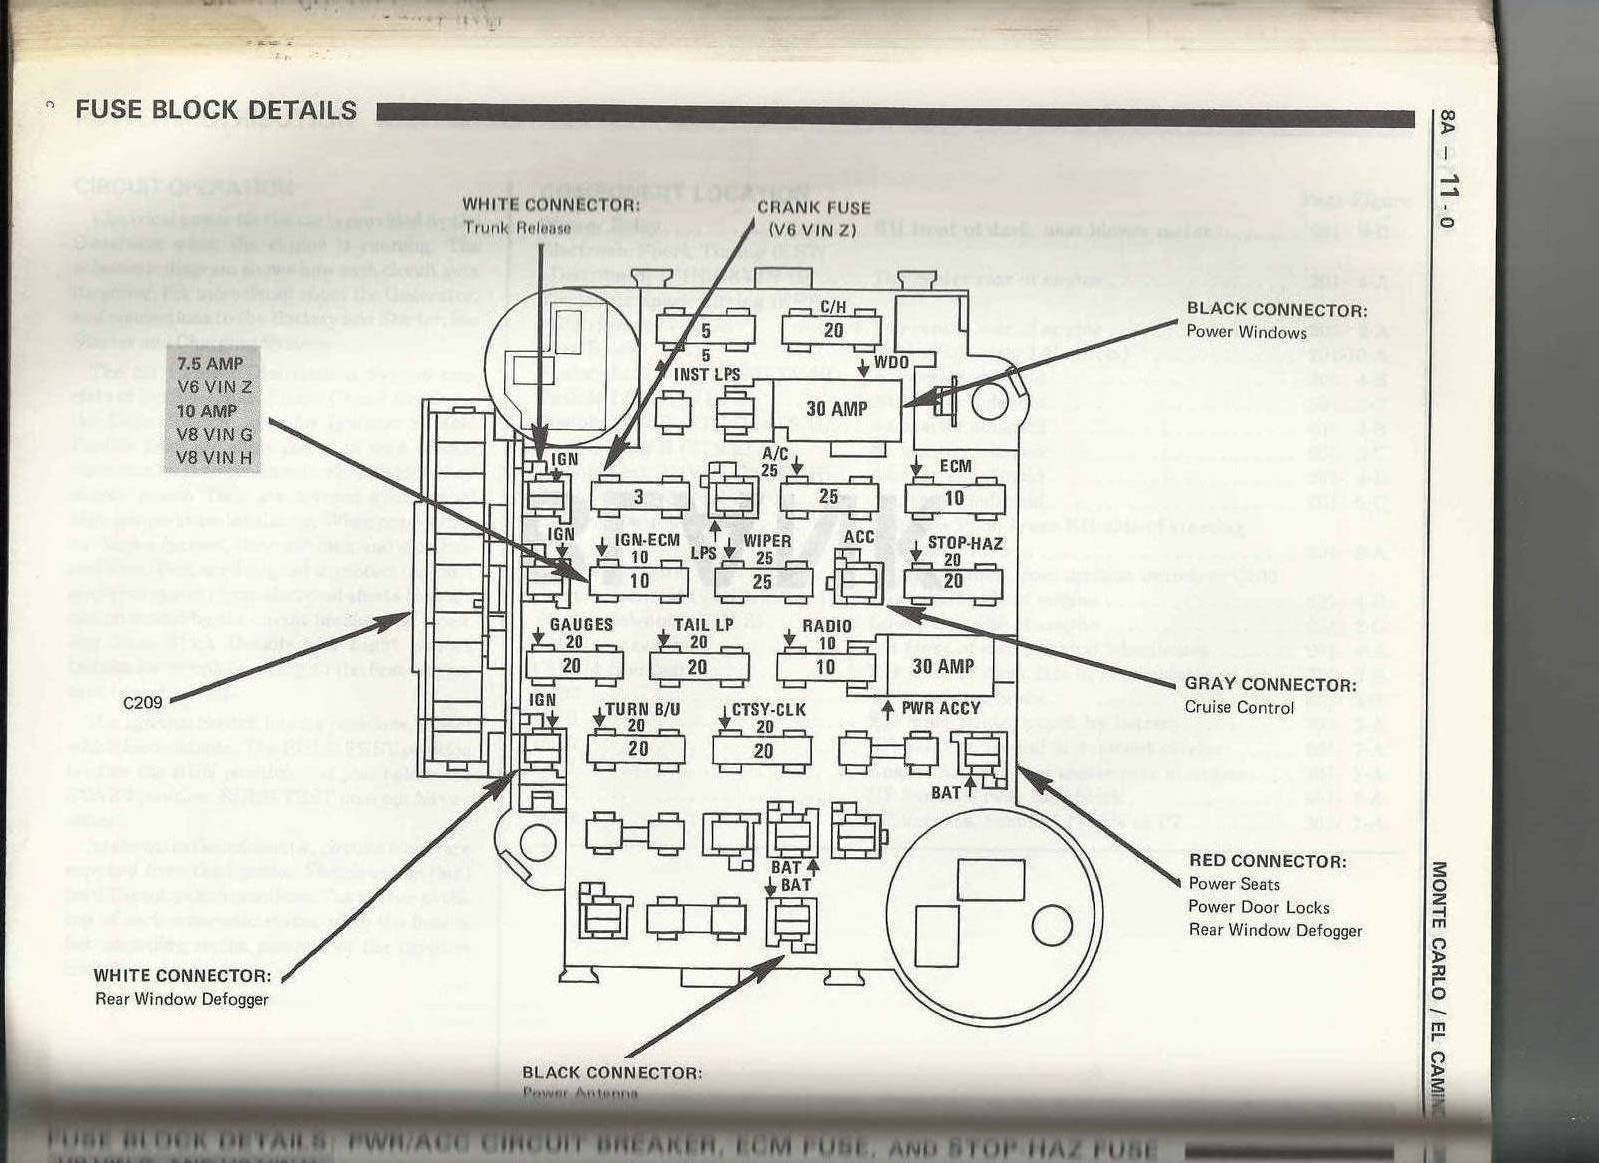 1985 Monte Carlo Fuse Box Diagram Wiring Diagrams Site Data A Data A Geasparquet It